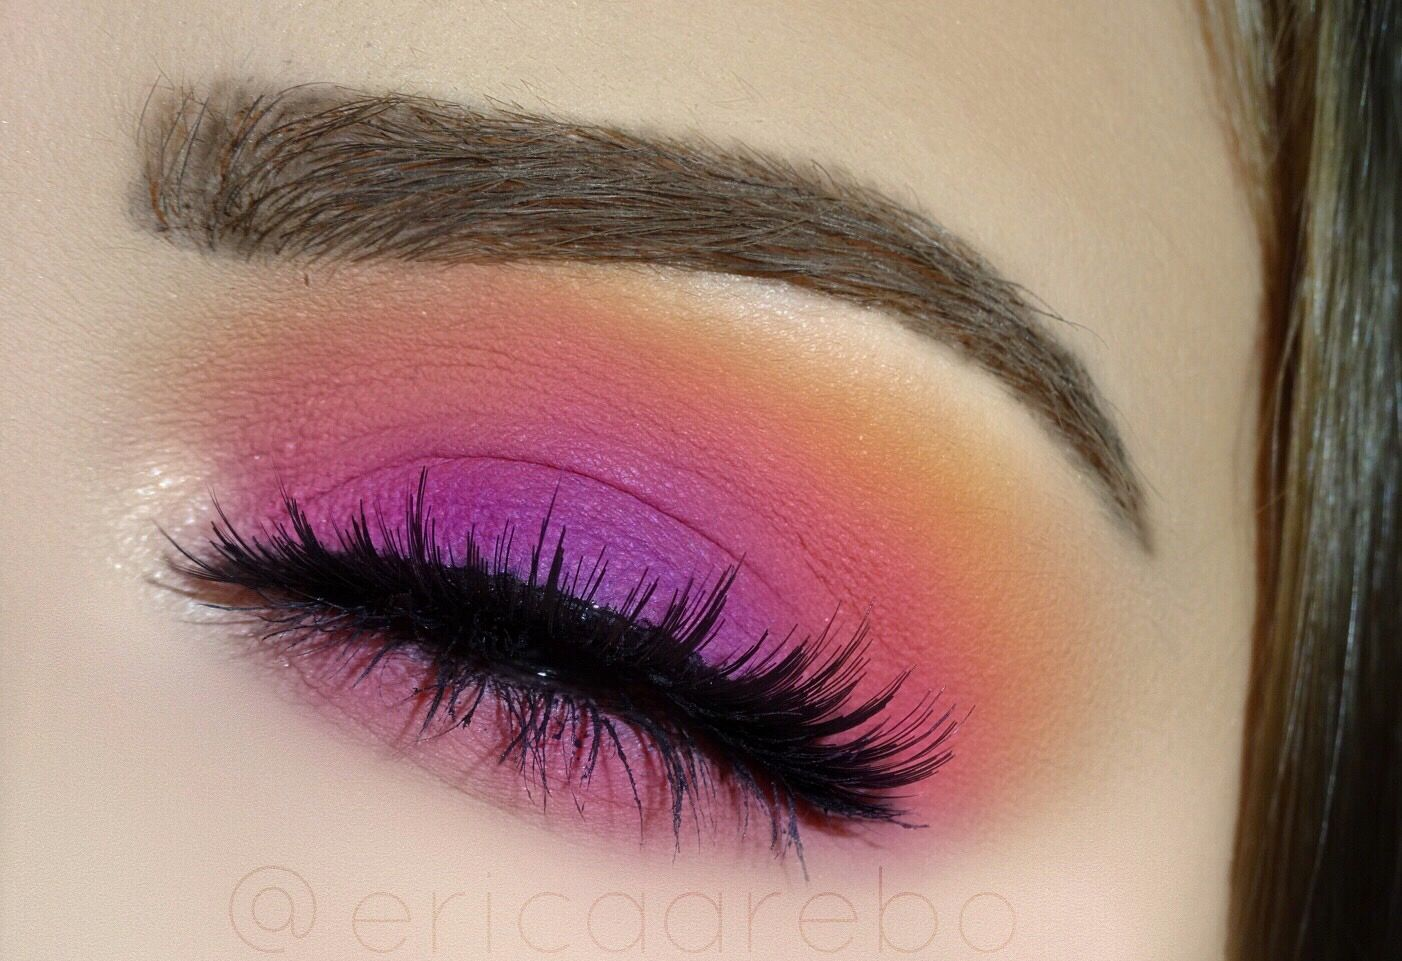 Colorful spring makeup brows anastasia beverlyhills brow wiz colorful spring makeup brows anastasia beverlyhills brow wiz chocolate shadows nyx ultimate baditri Images